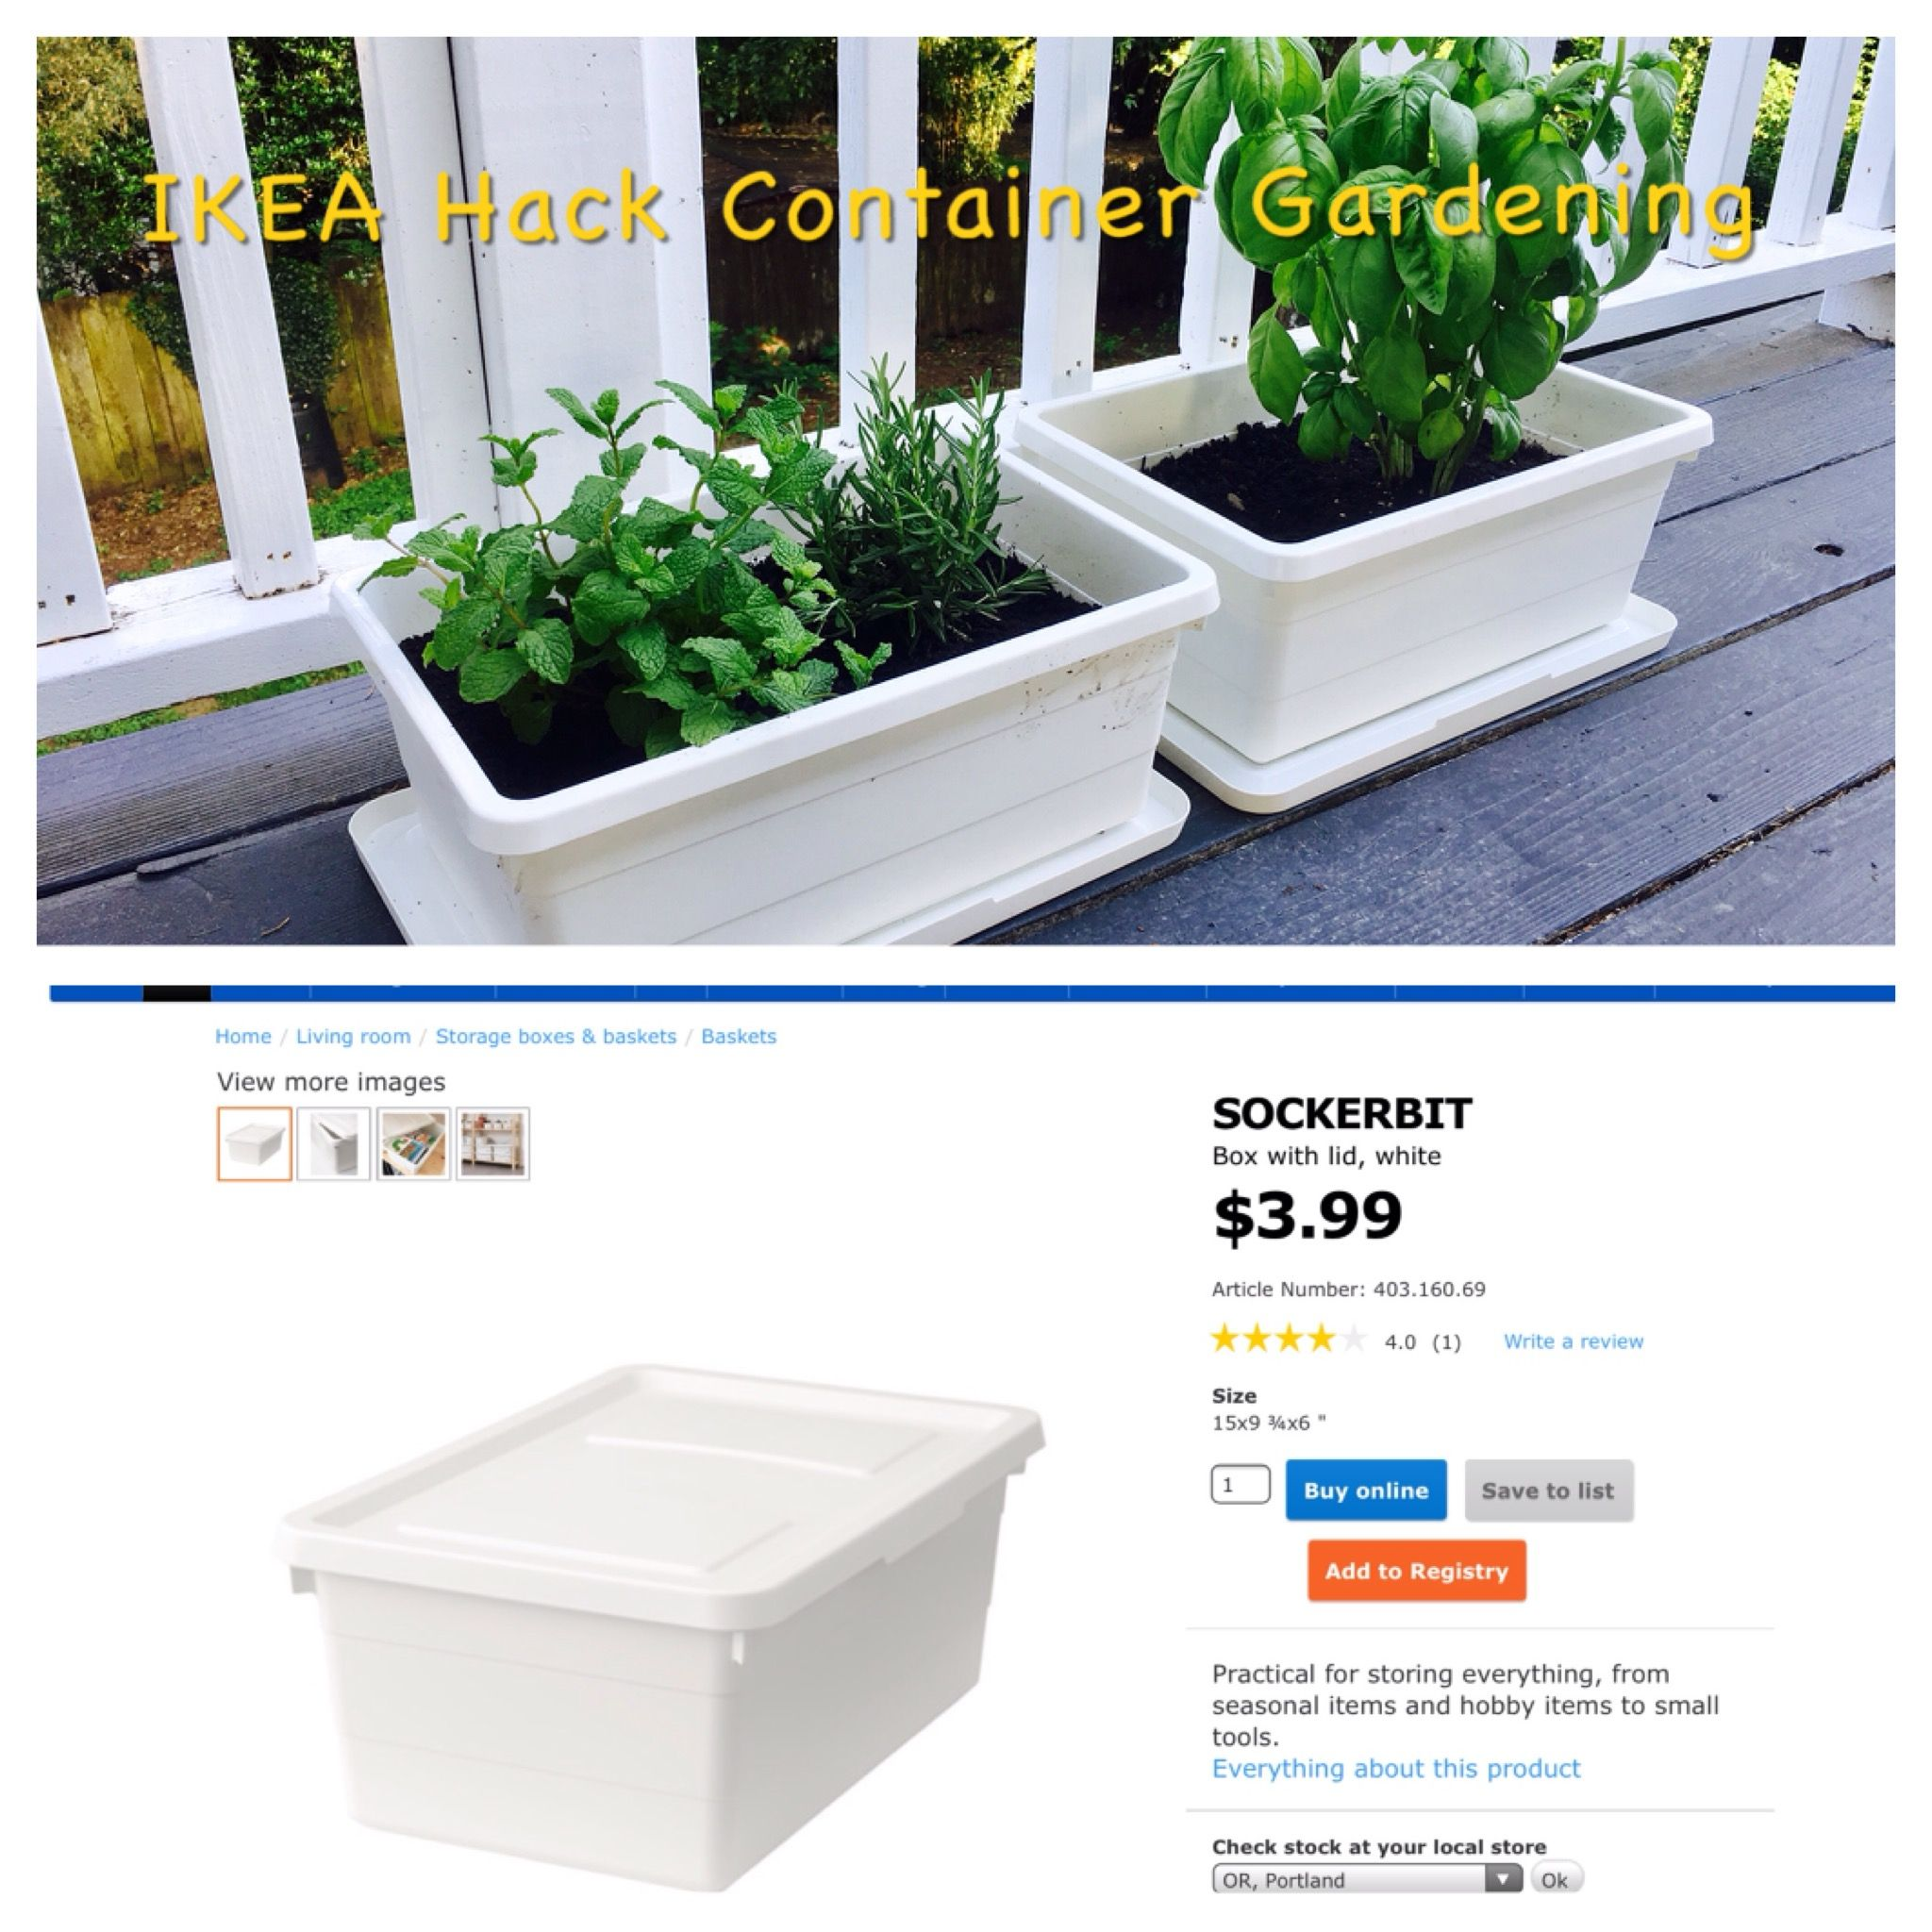 Balkon Teppich Coop Ikea Hack Container Gardening With Sockerbit 3 99 Tubs Drill